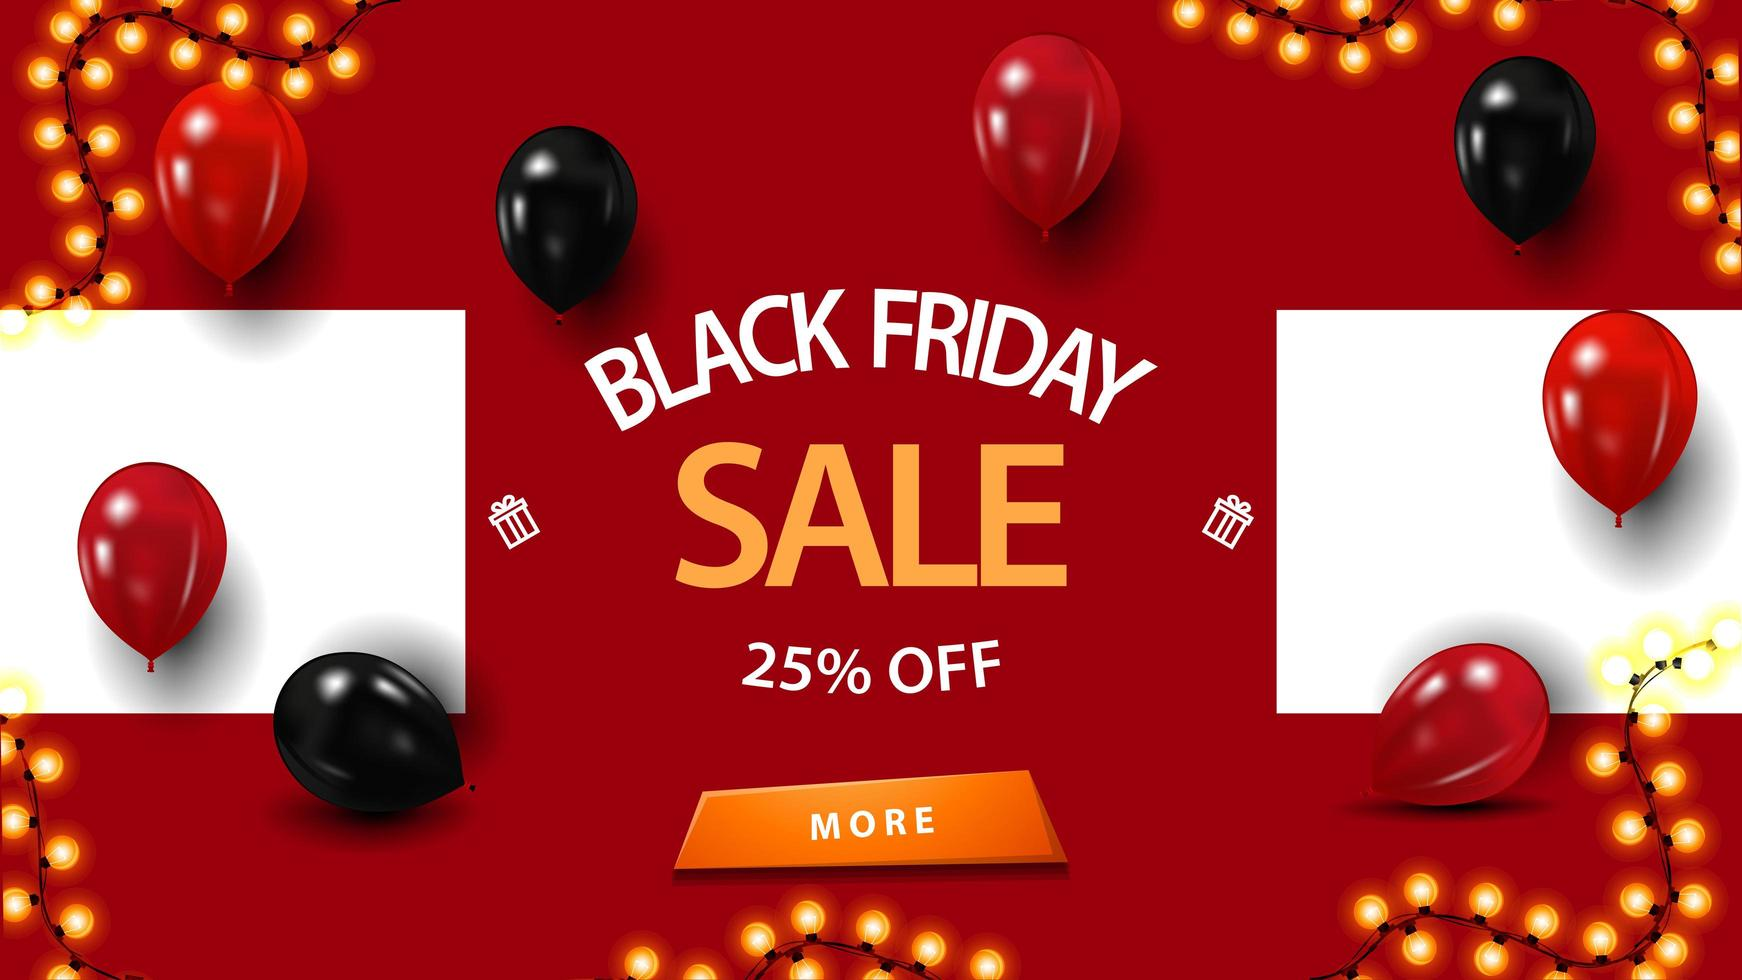 Black Friday sale, up to 25 off, discount red banner with balloons vector